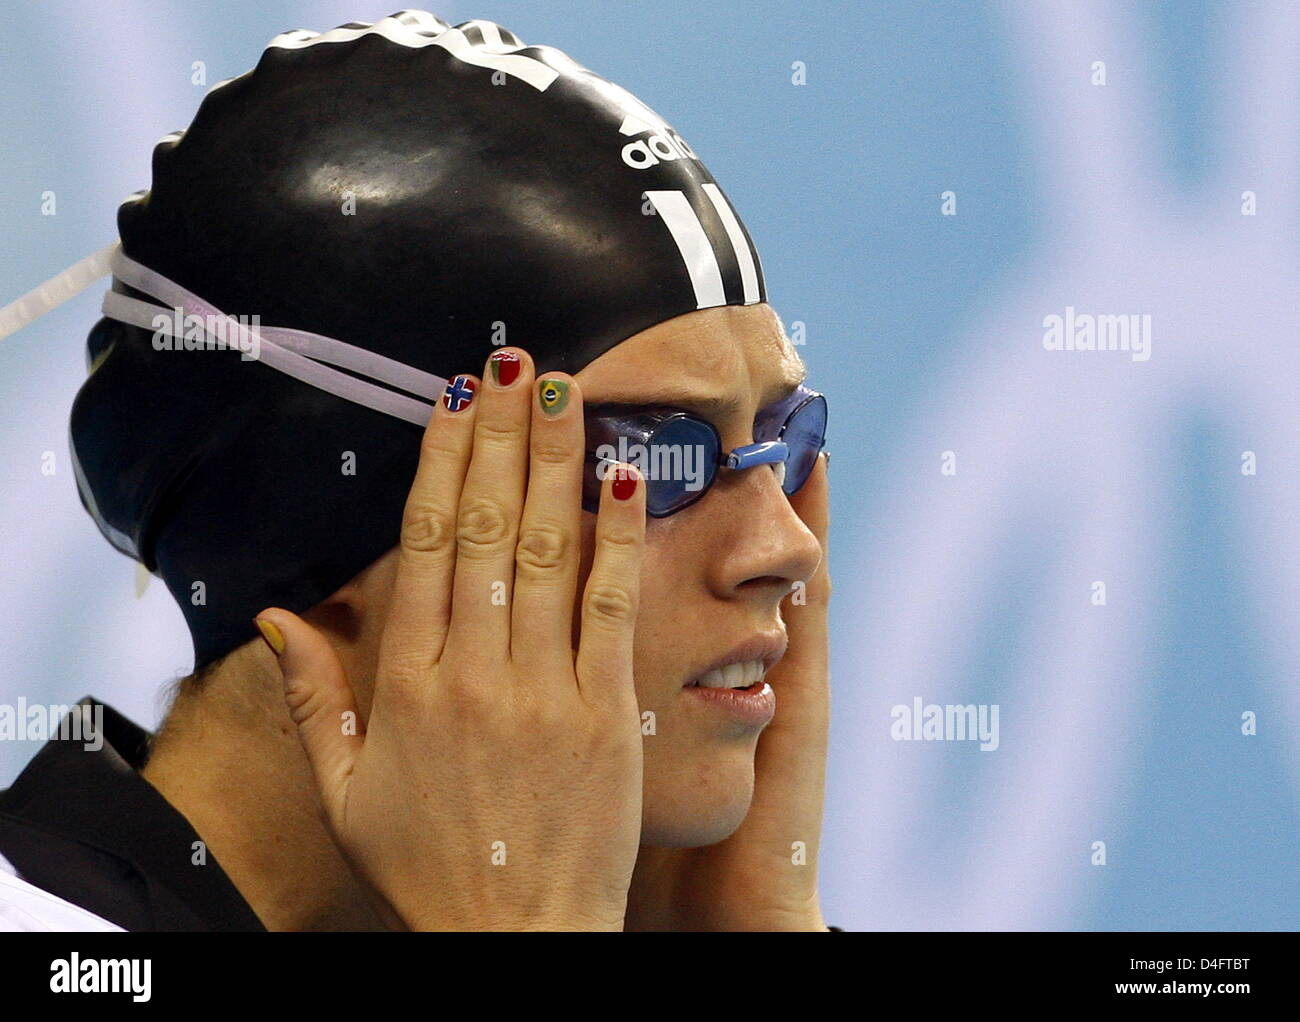 Lena Schoeneborn of Germany concentrates prior to the Women's Swimming 200m Freestyle in the Yingdong Natatorium - Stock Image